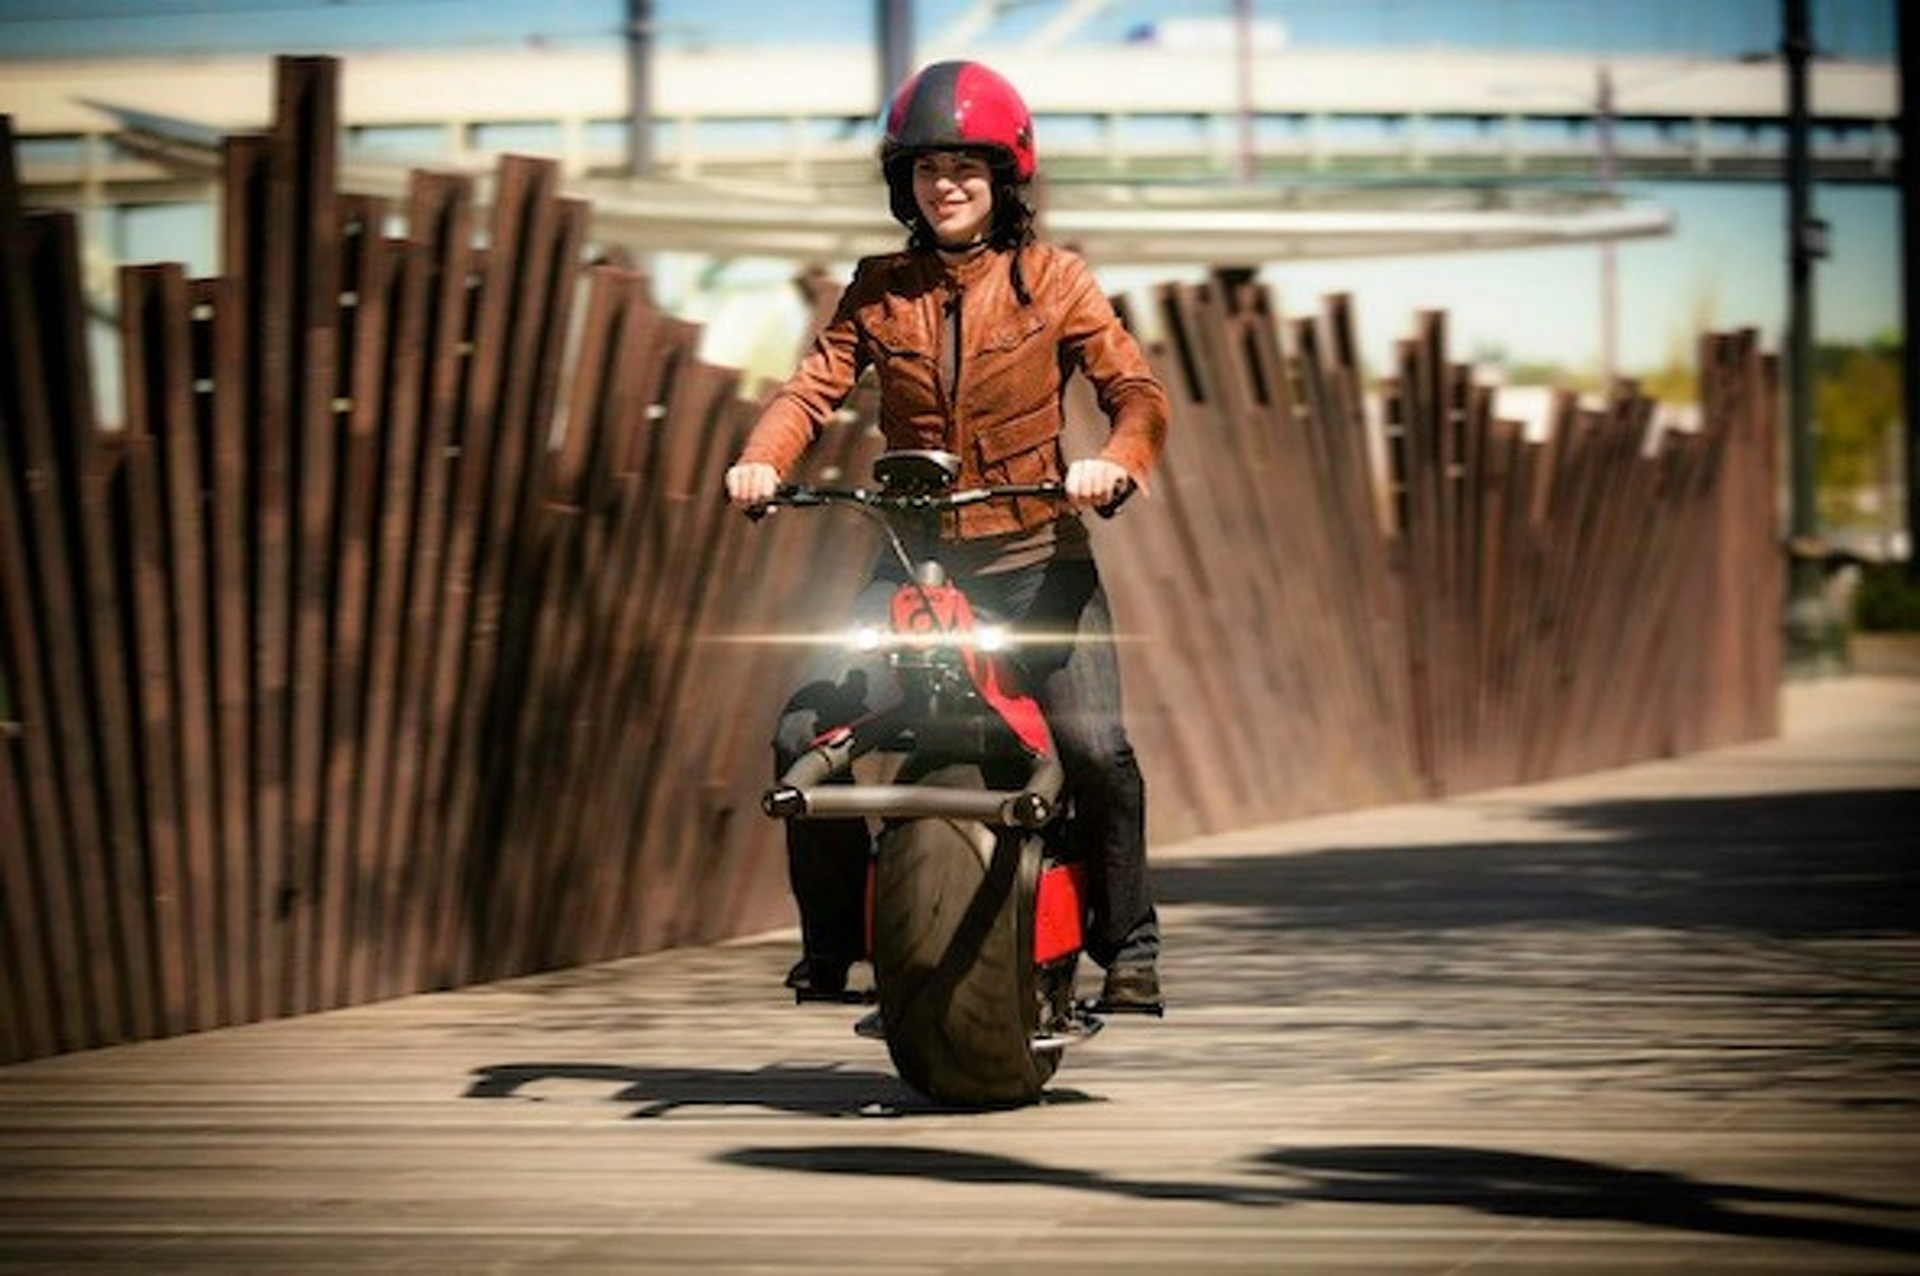 RYNO Motorcycles: Changing the Game One Wheel at a Time